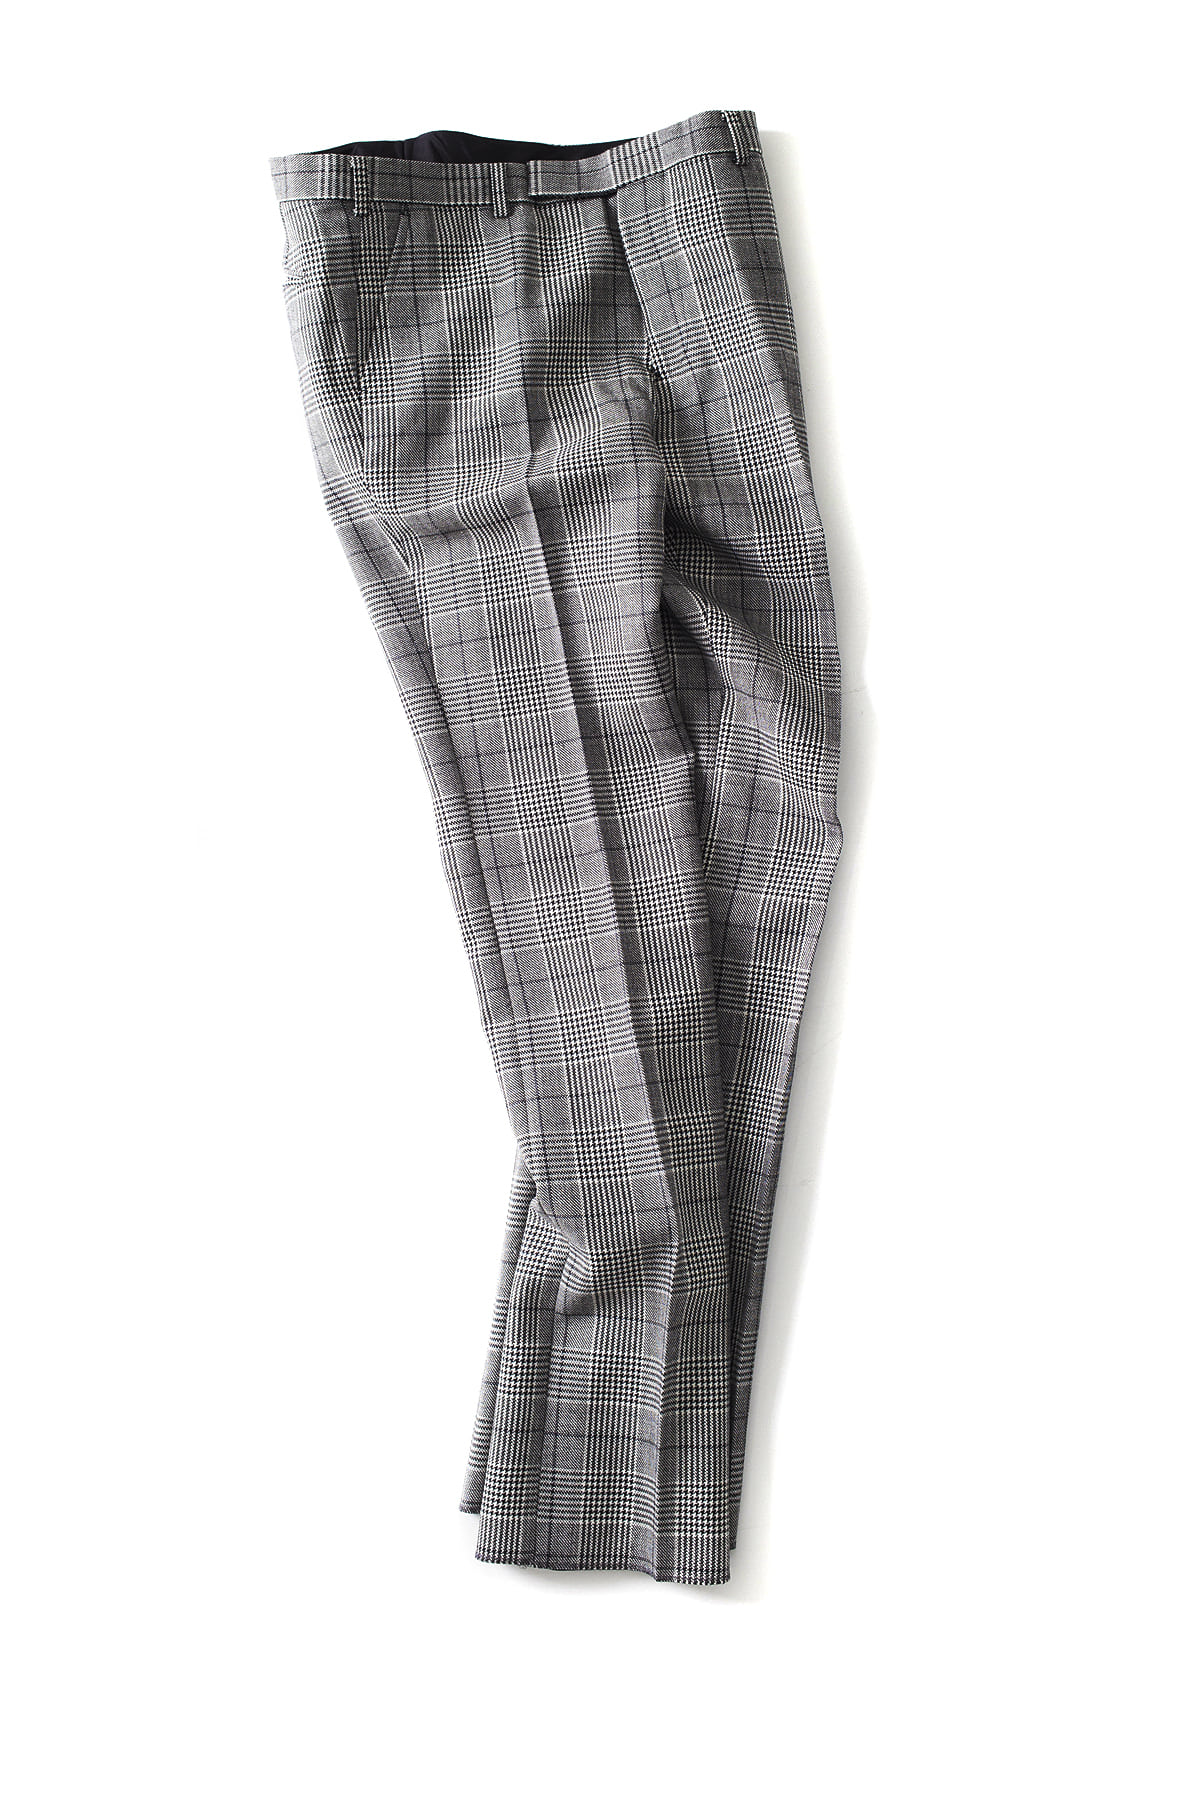 JOHN LAWRENCE SULLIVAN : Glen Check Straight Pants (Grey)